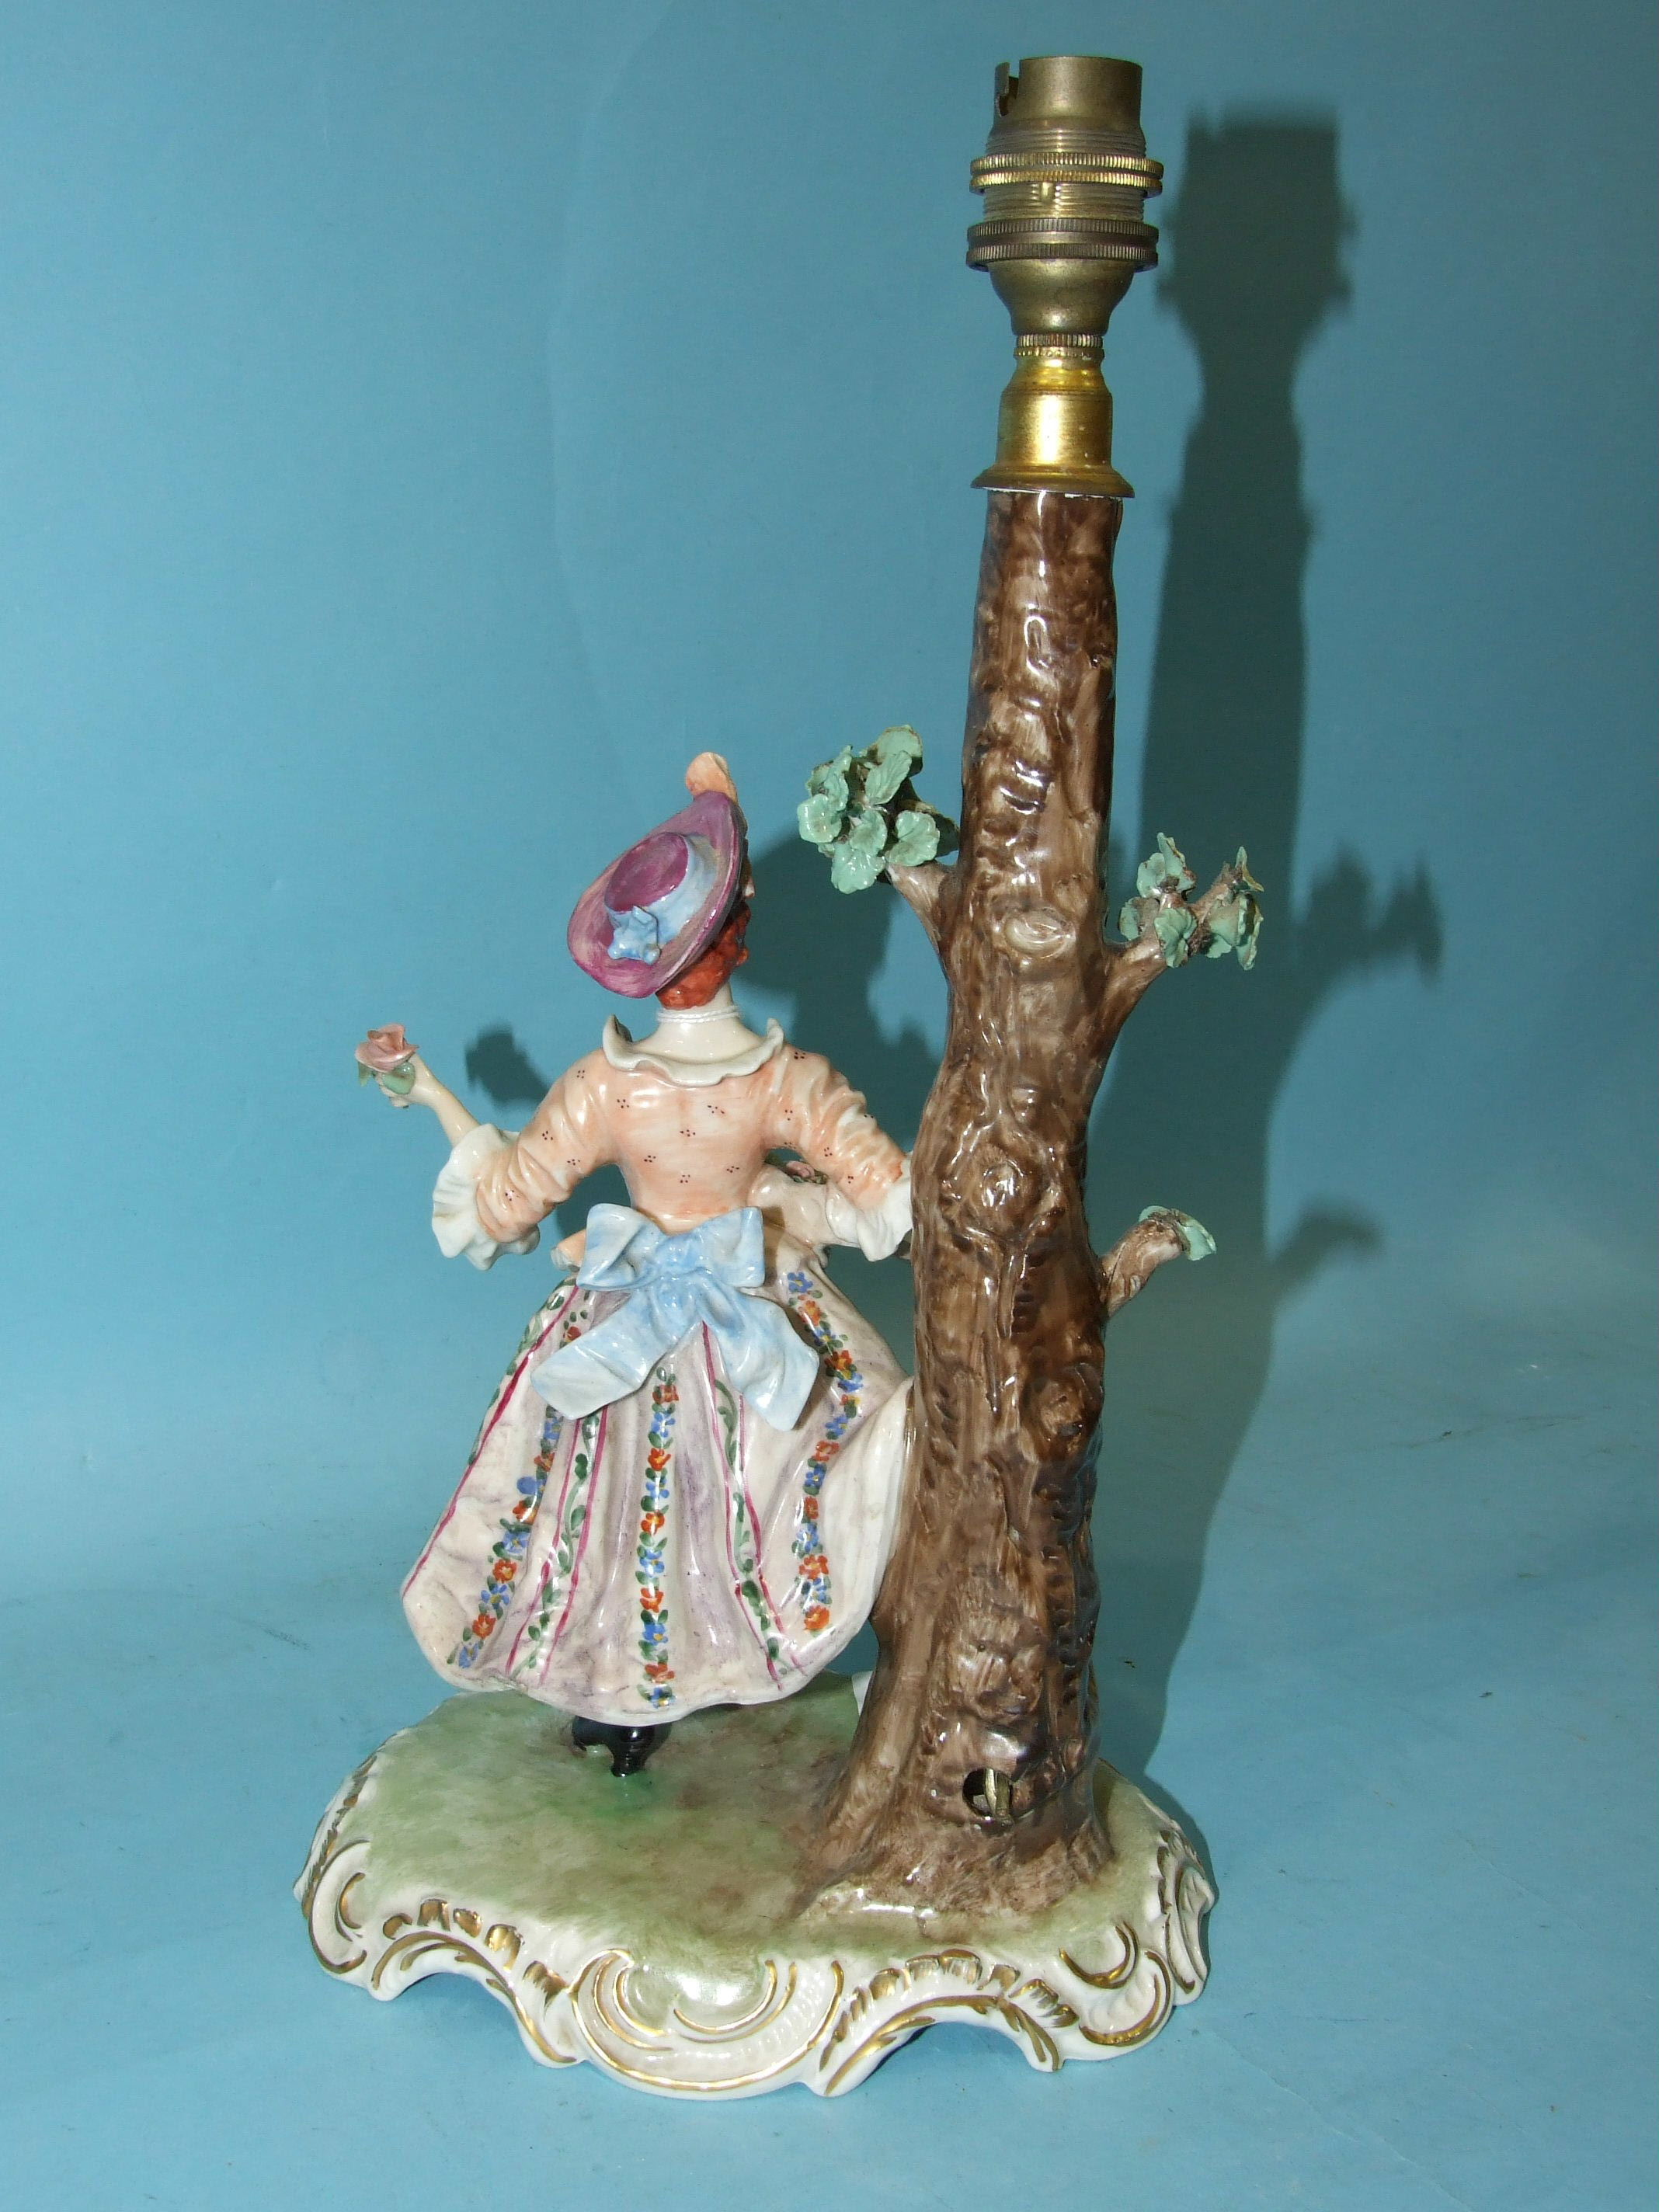 Lot 187 - A 20th century Naples porcelain table lamp in the form of a young woman, 39cm.